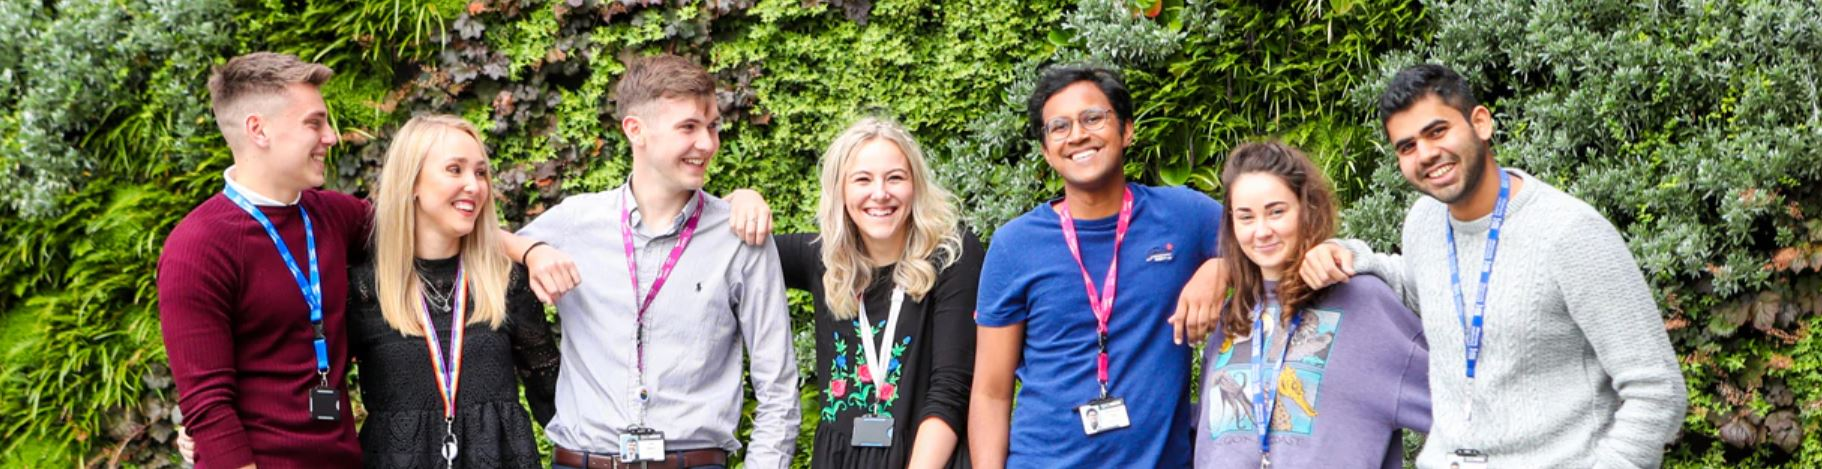 Image of 7 young apprentices standing leaning on each others shoulders smiling at the camera